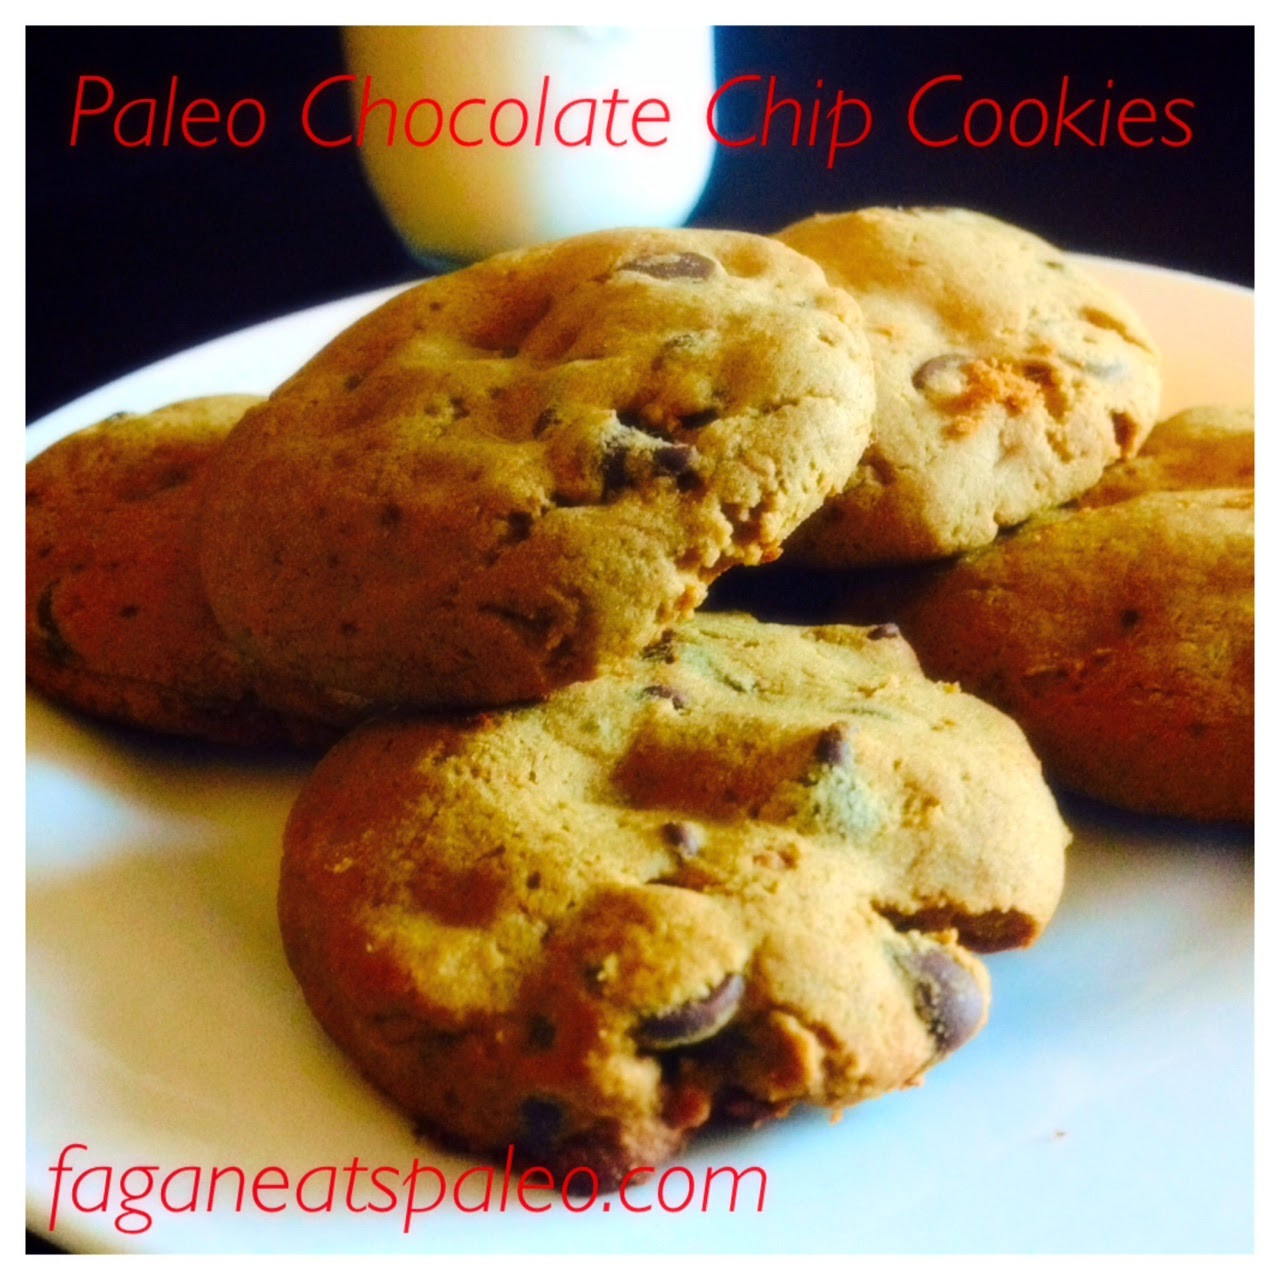 Paleo Chocolate Chip Cookies with Banana Flour